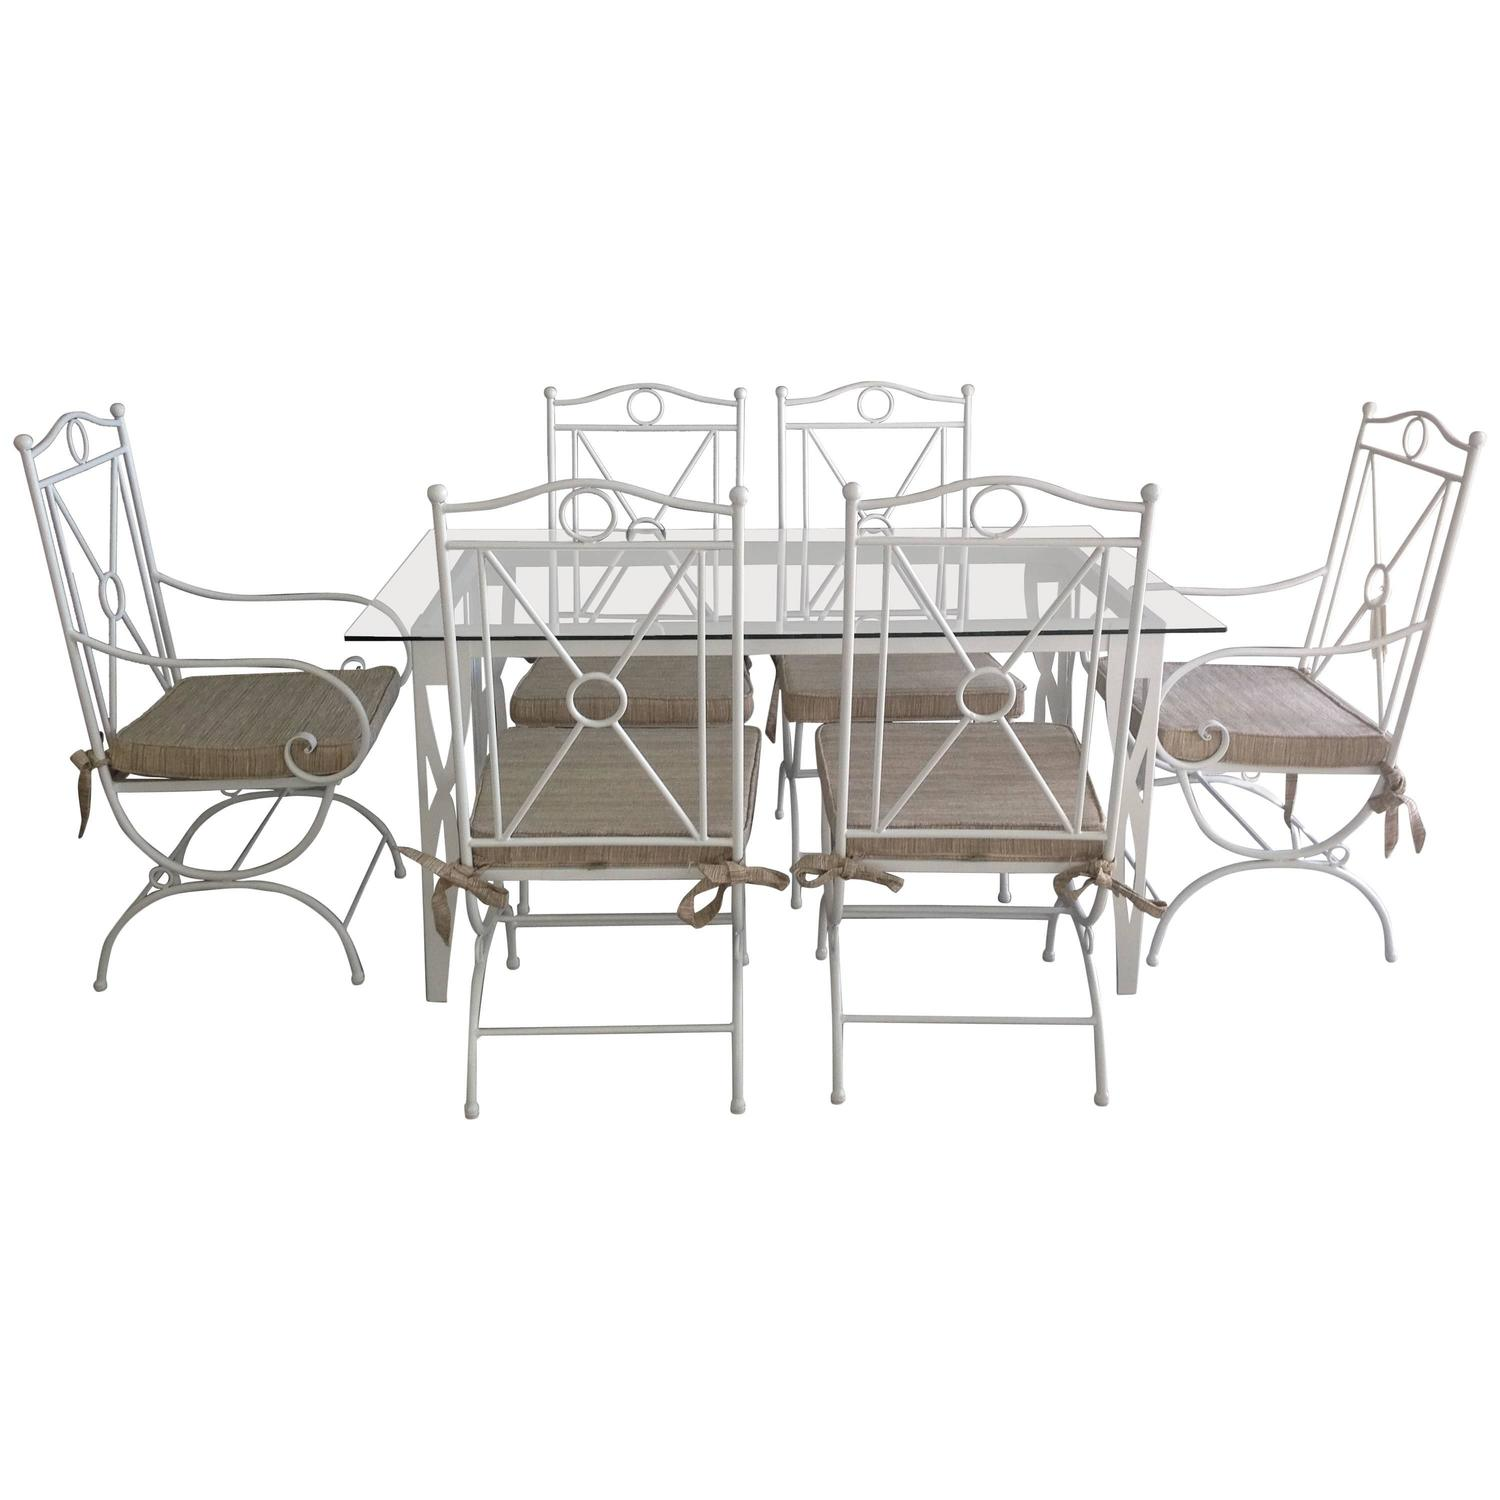 Handmade white wrought iron patio dining set garden for Outdoor tables and chairs for sale